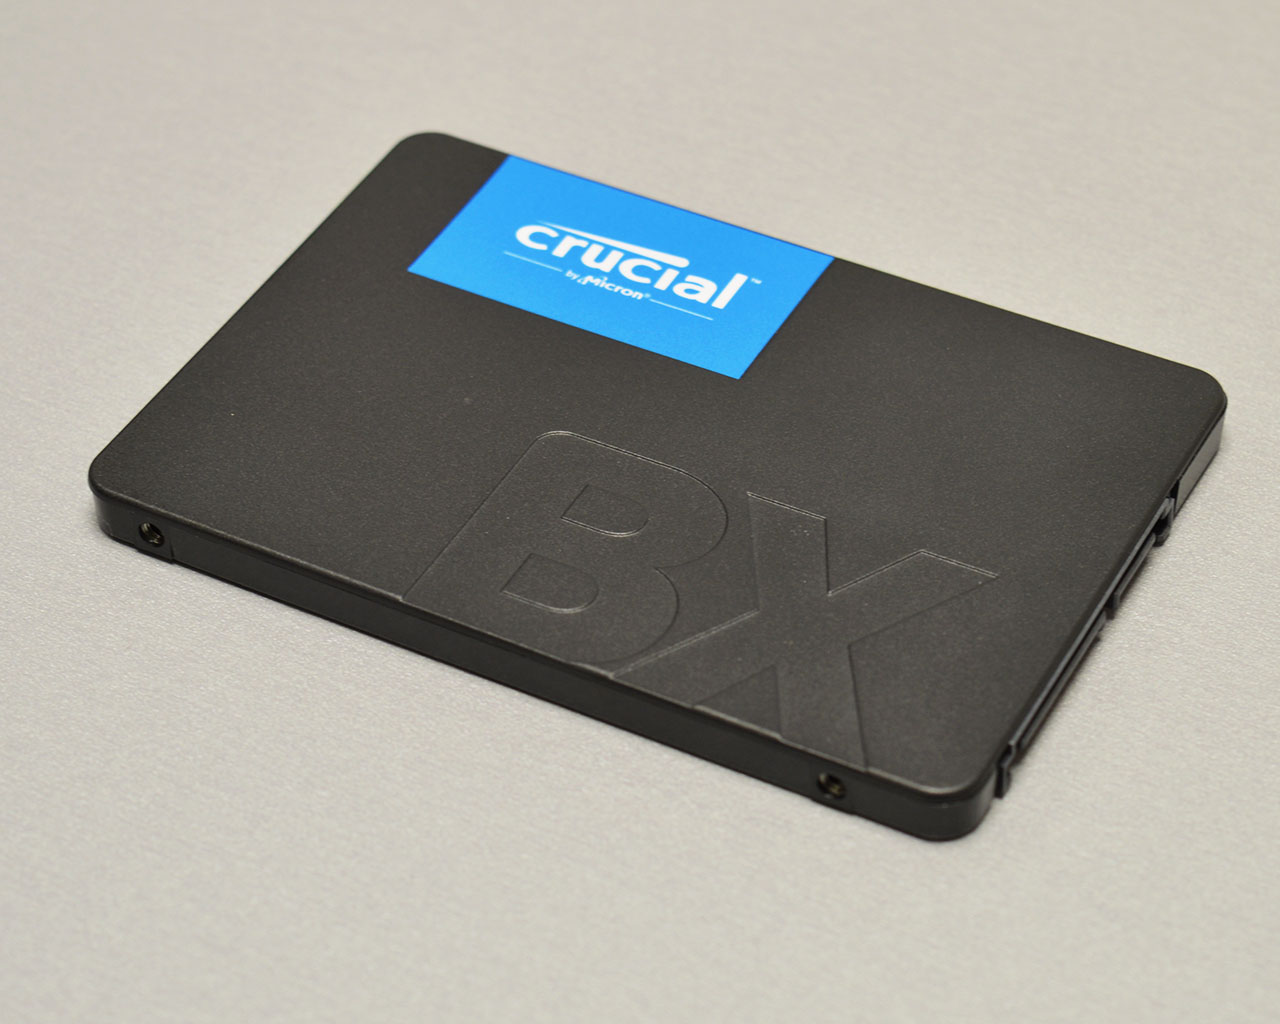 Crucial BX500 960GB SATA SSD Review - Page 2 of 5 - FunkyKit